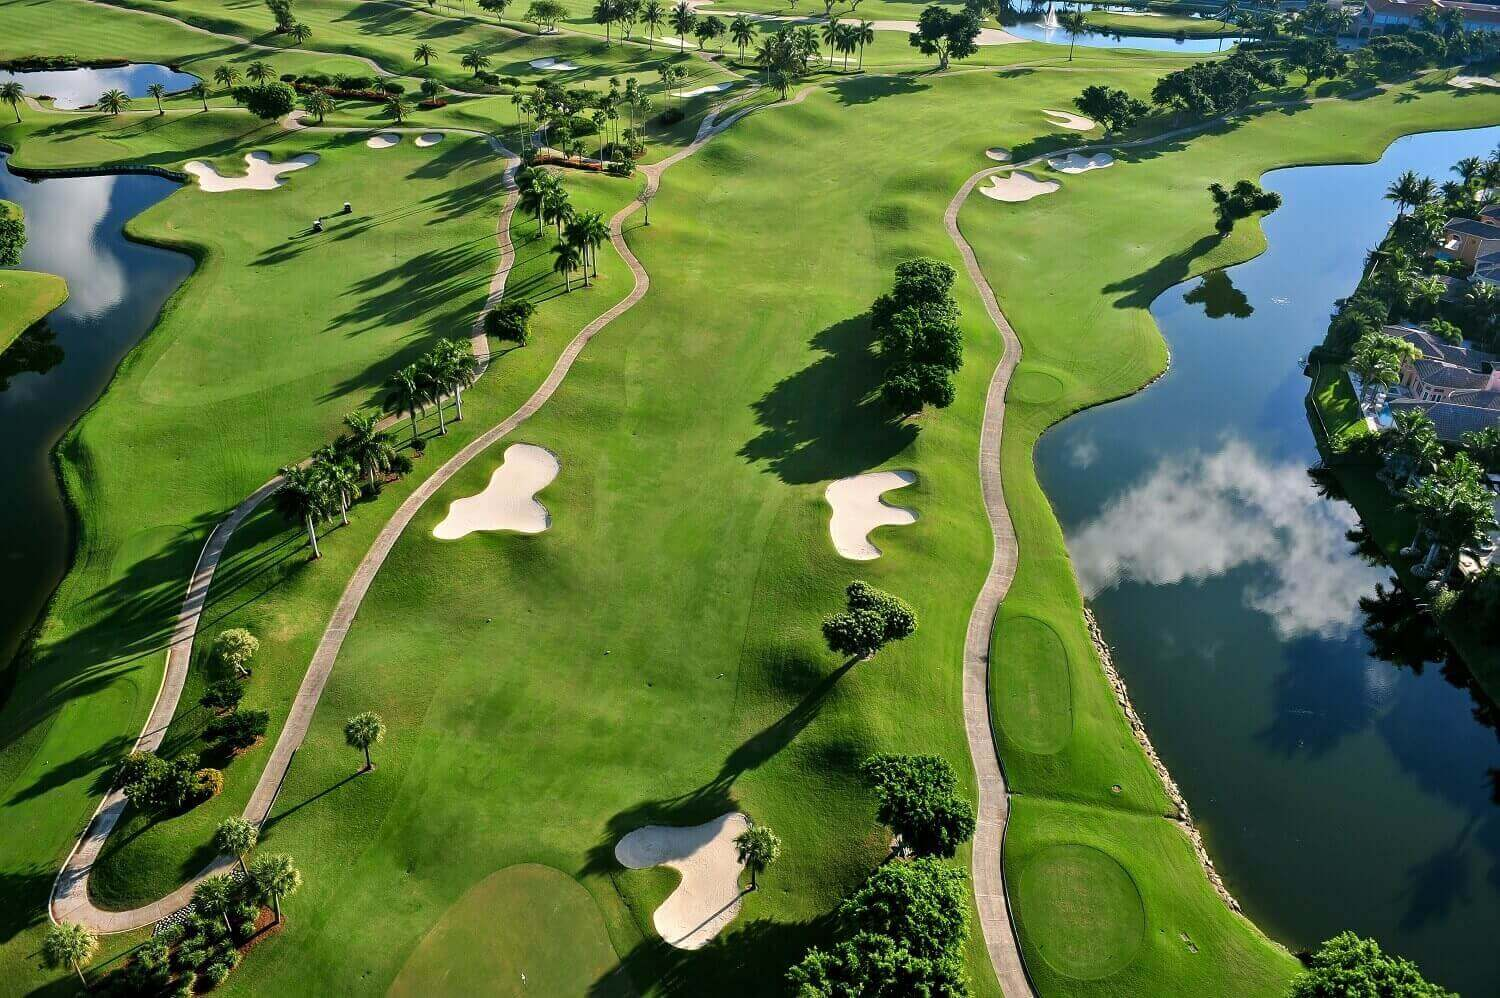 PGA golf course in Spain